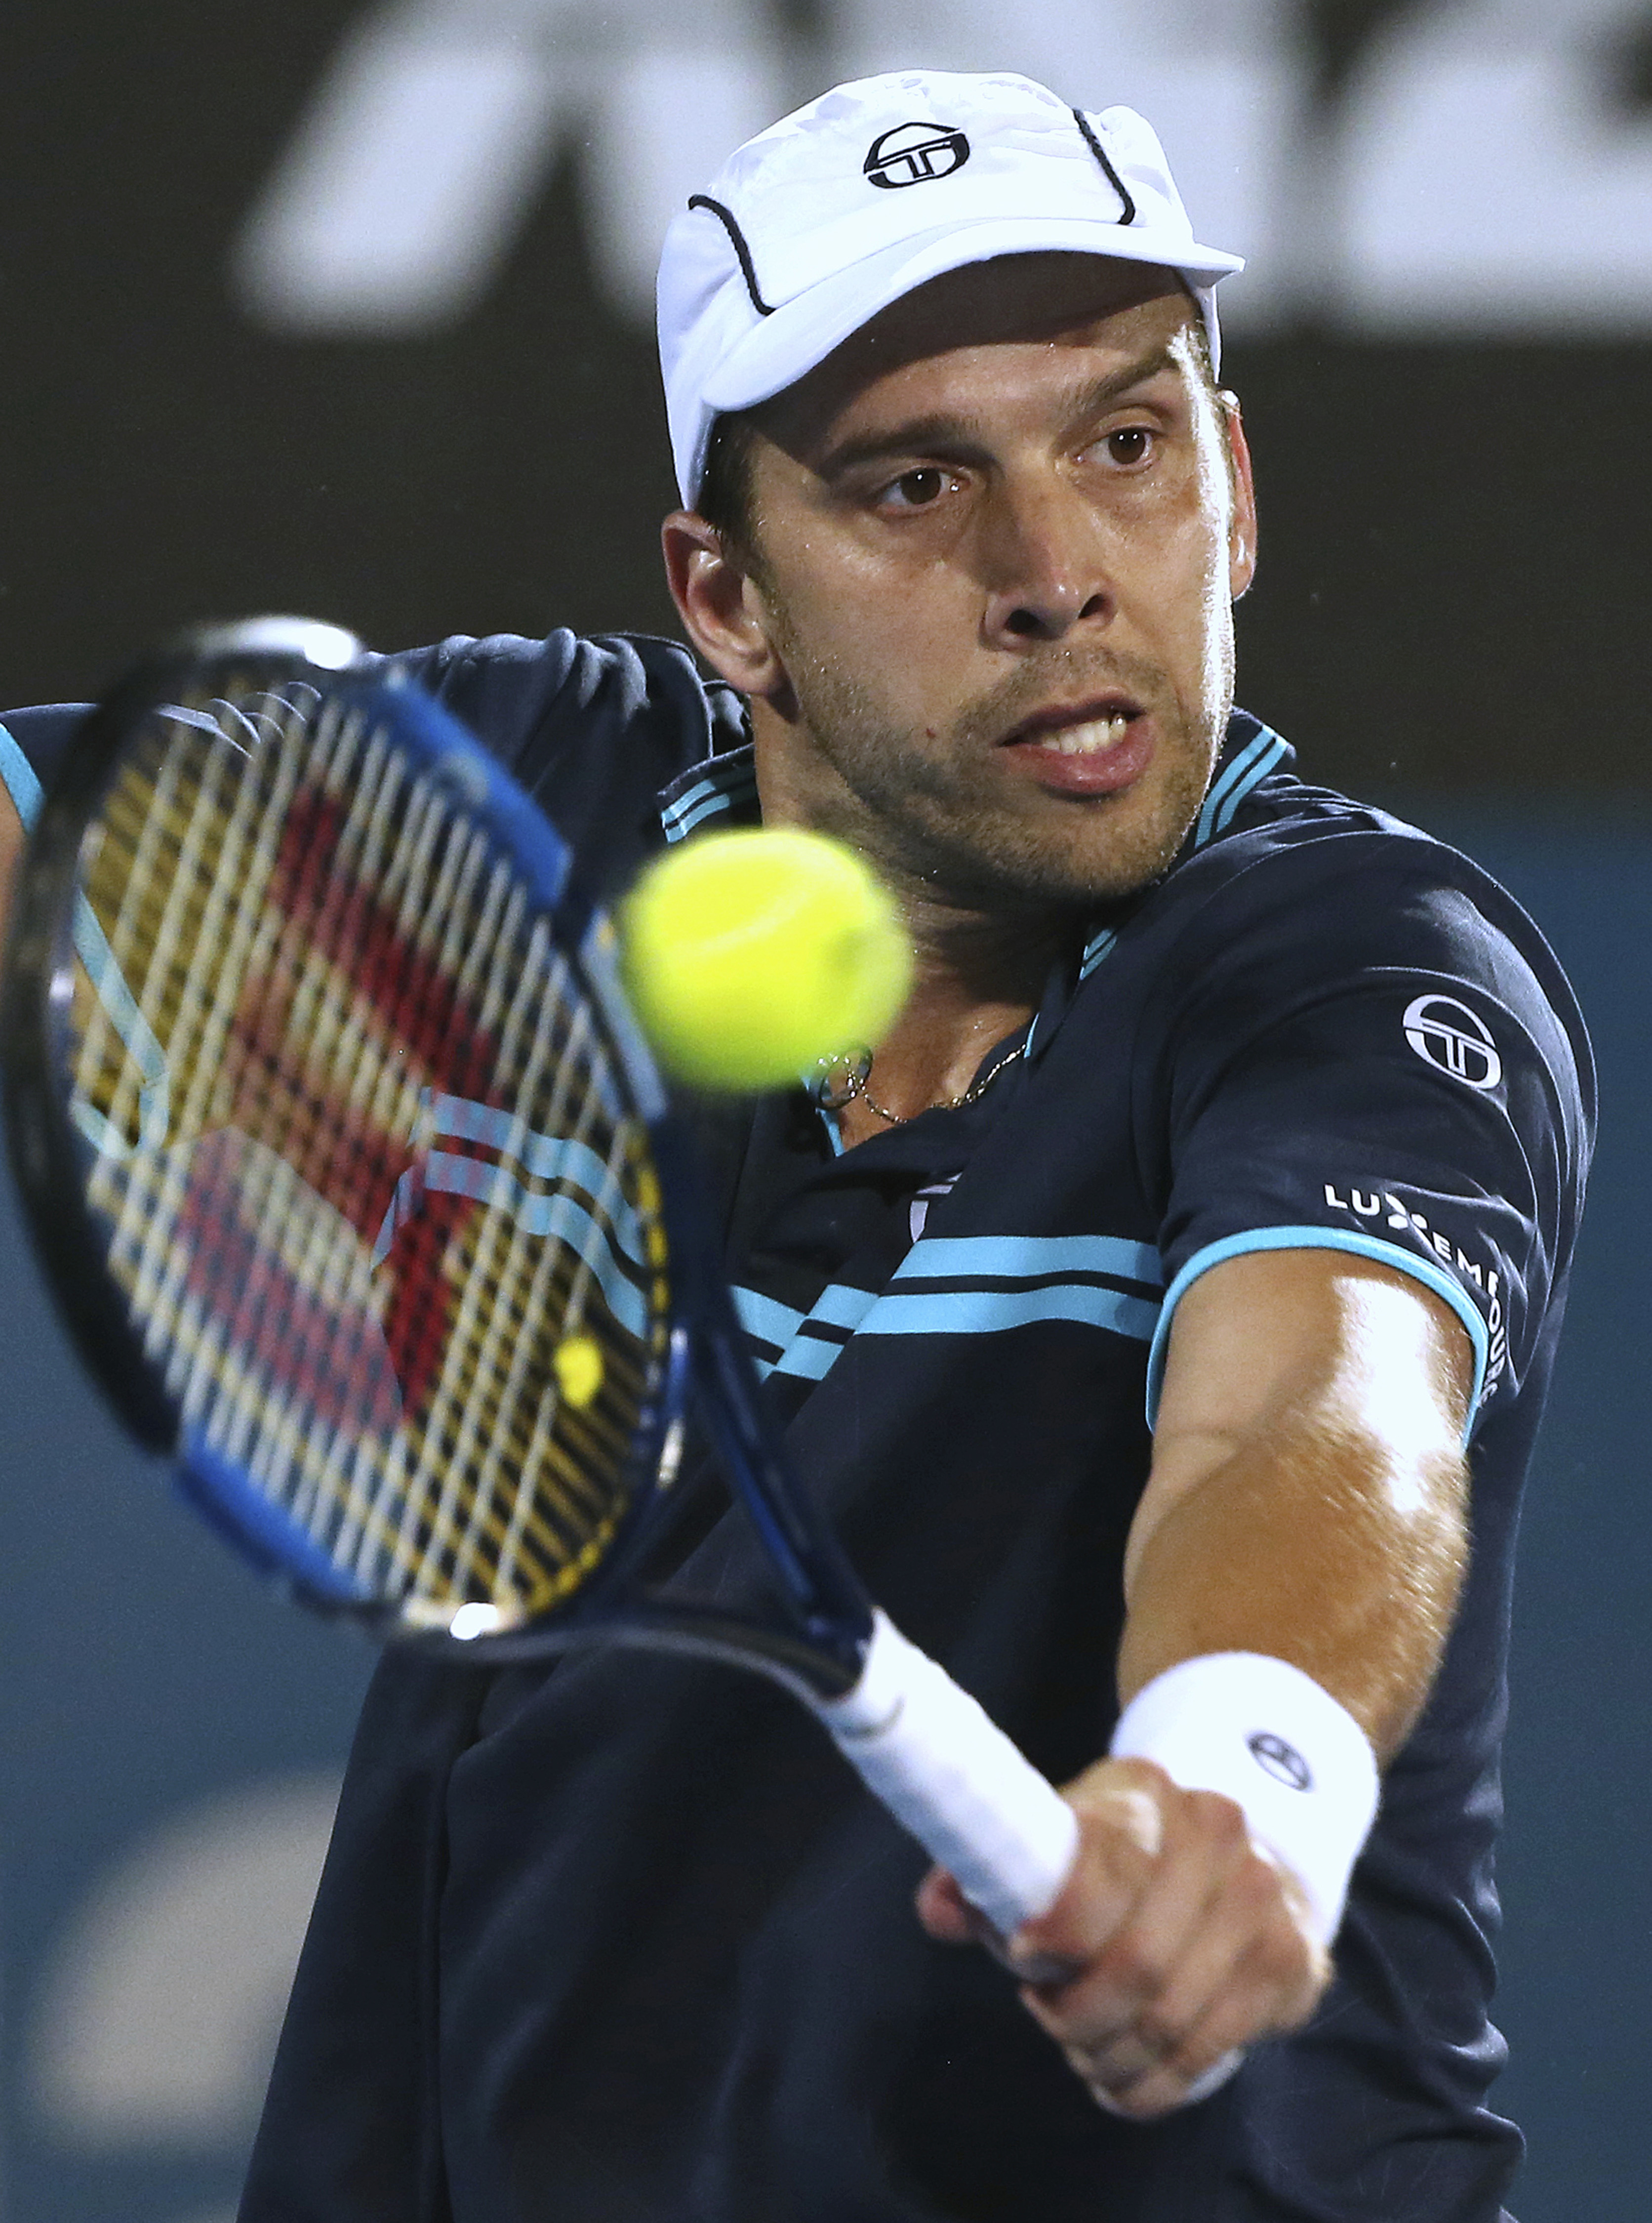 Gilles Muller of Luxembourg plays a shot to Britain's Daniel Evans during the men's singles final at the Sydney International tennis tournament in Sydney, Australia, Saturday, Jan. 14, 2017. (AP Photo/Rick Rycroft)